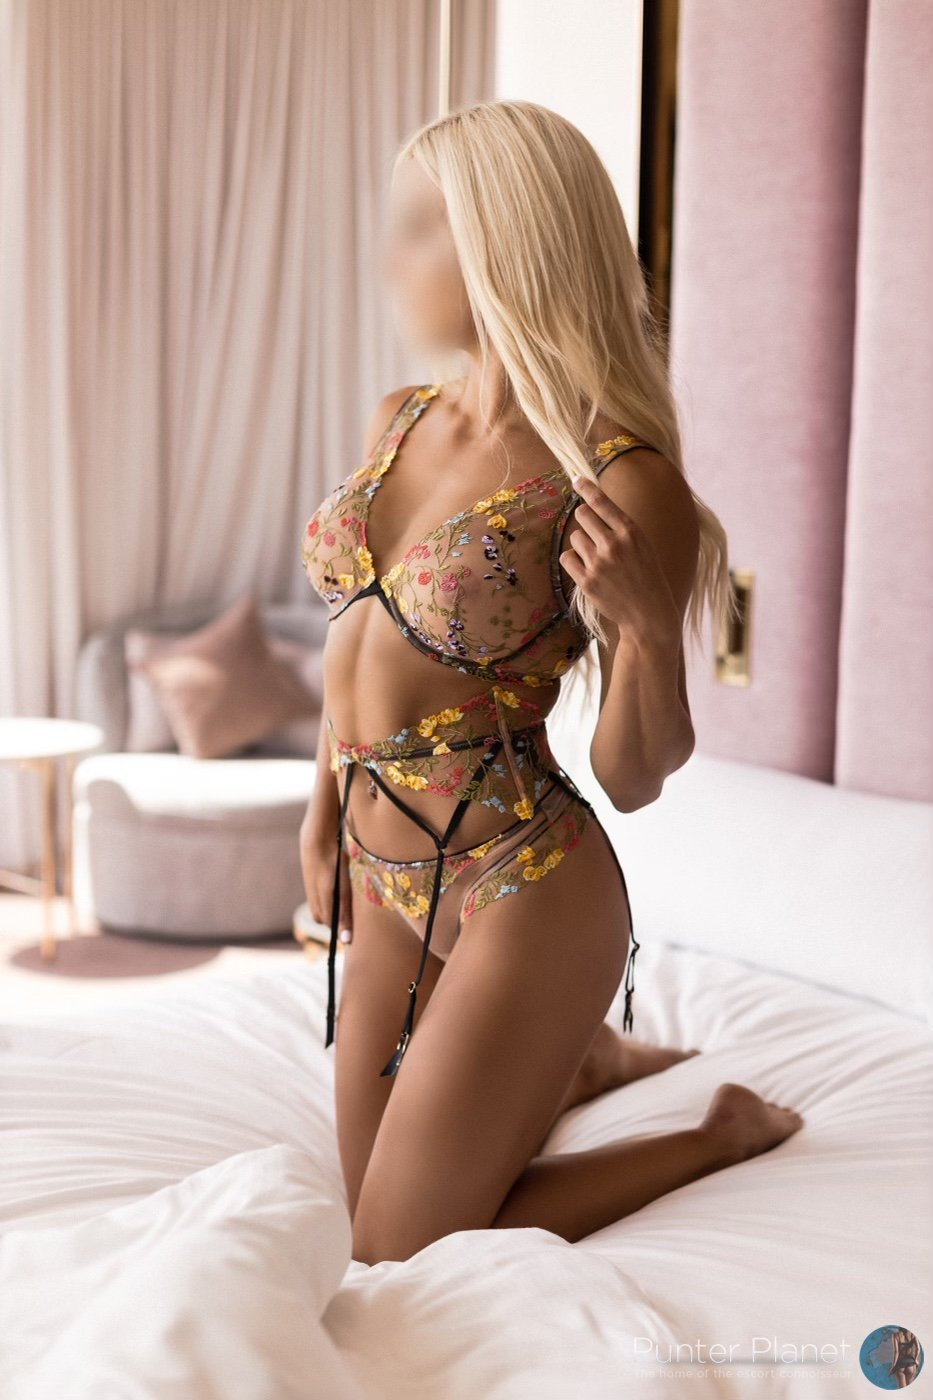 Gorgeous blonde bombshell Ava has arrived in Adelaide.